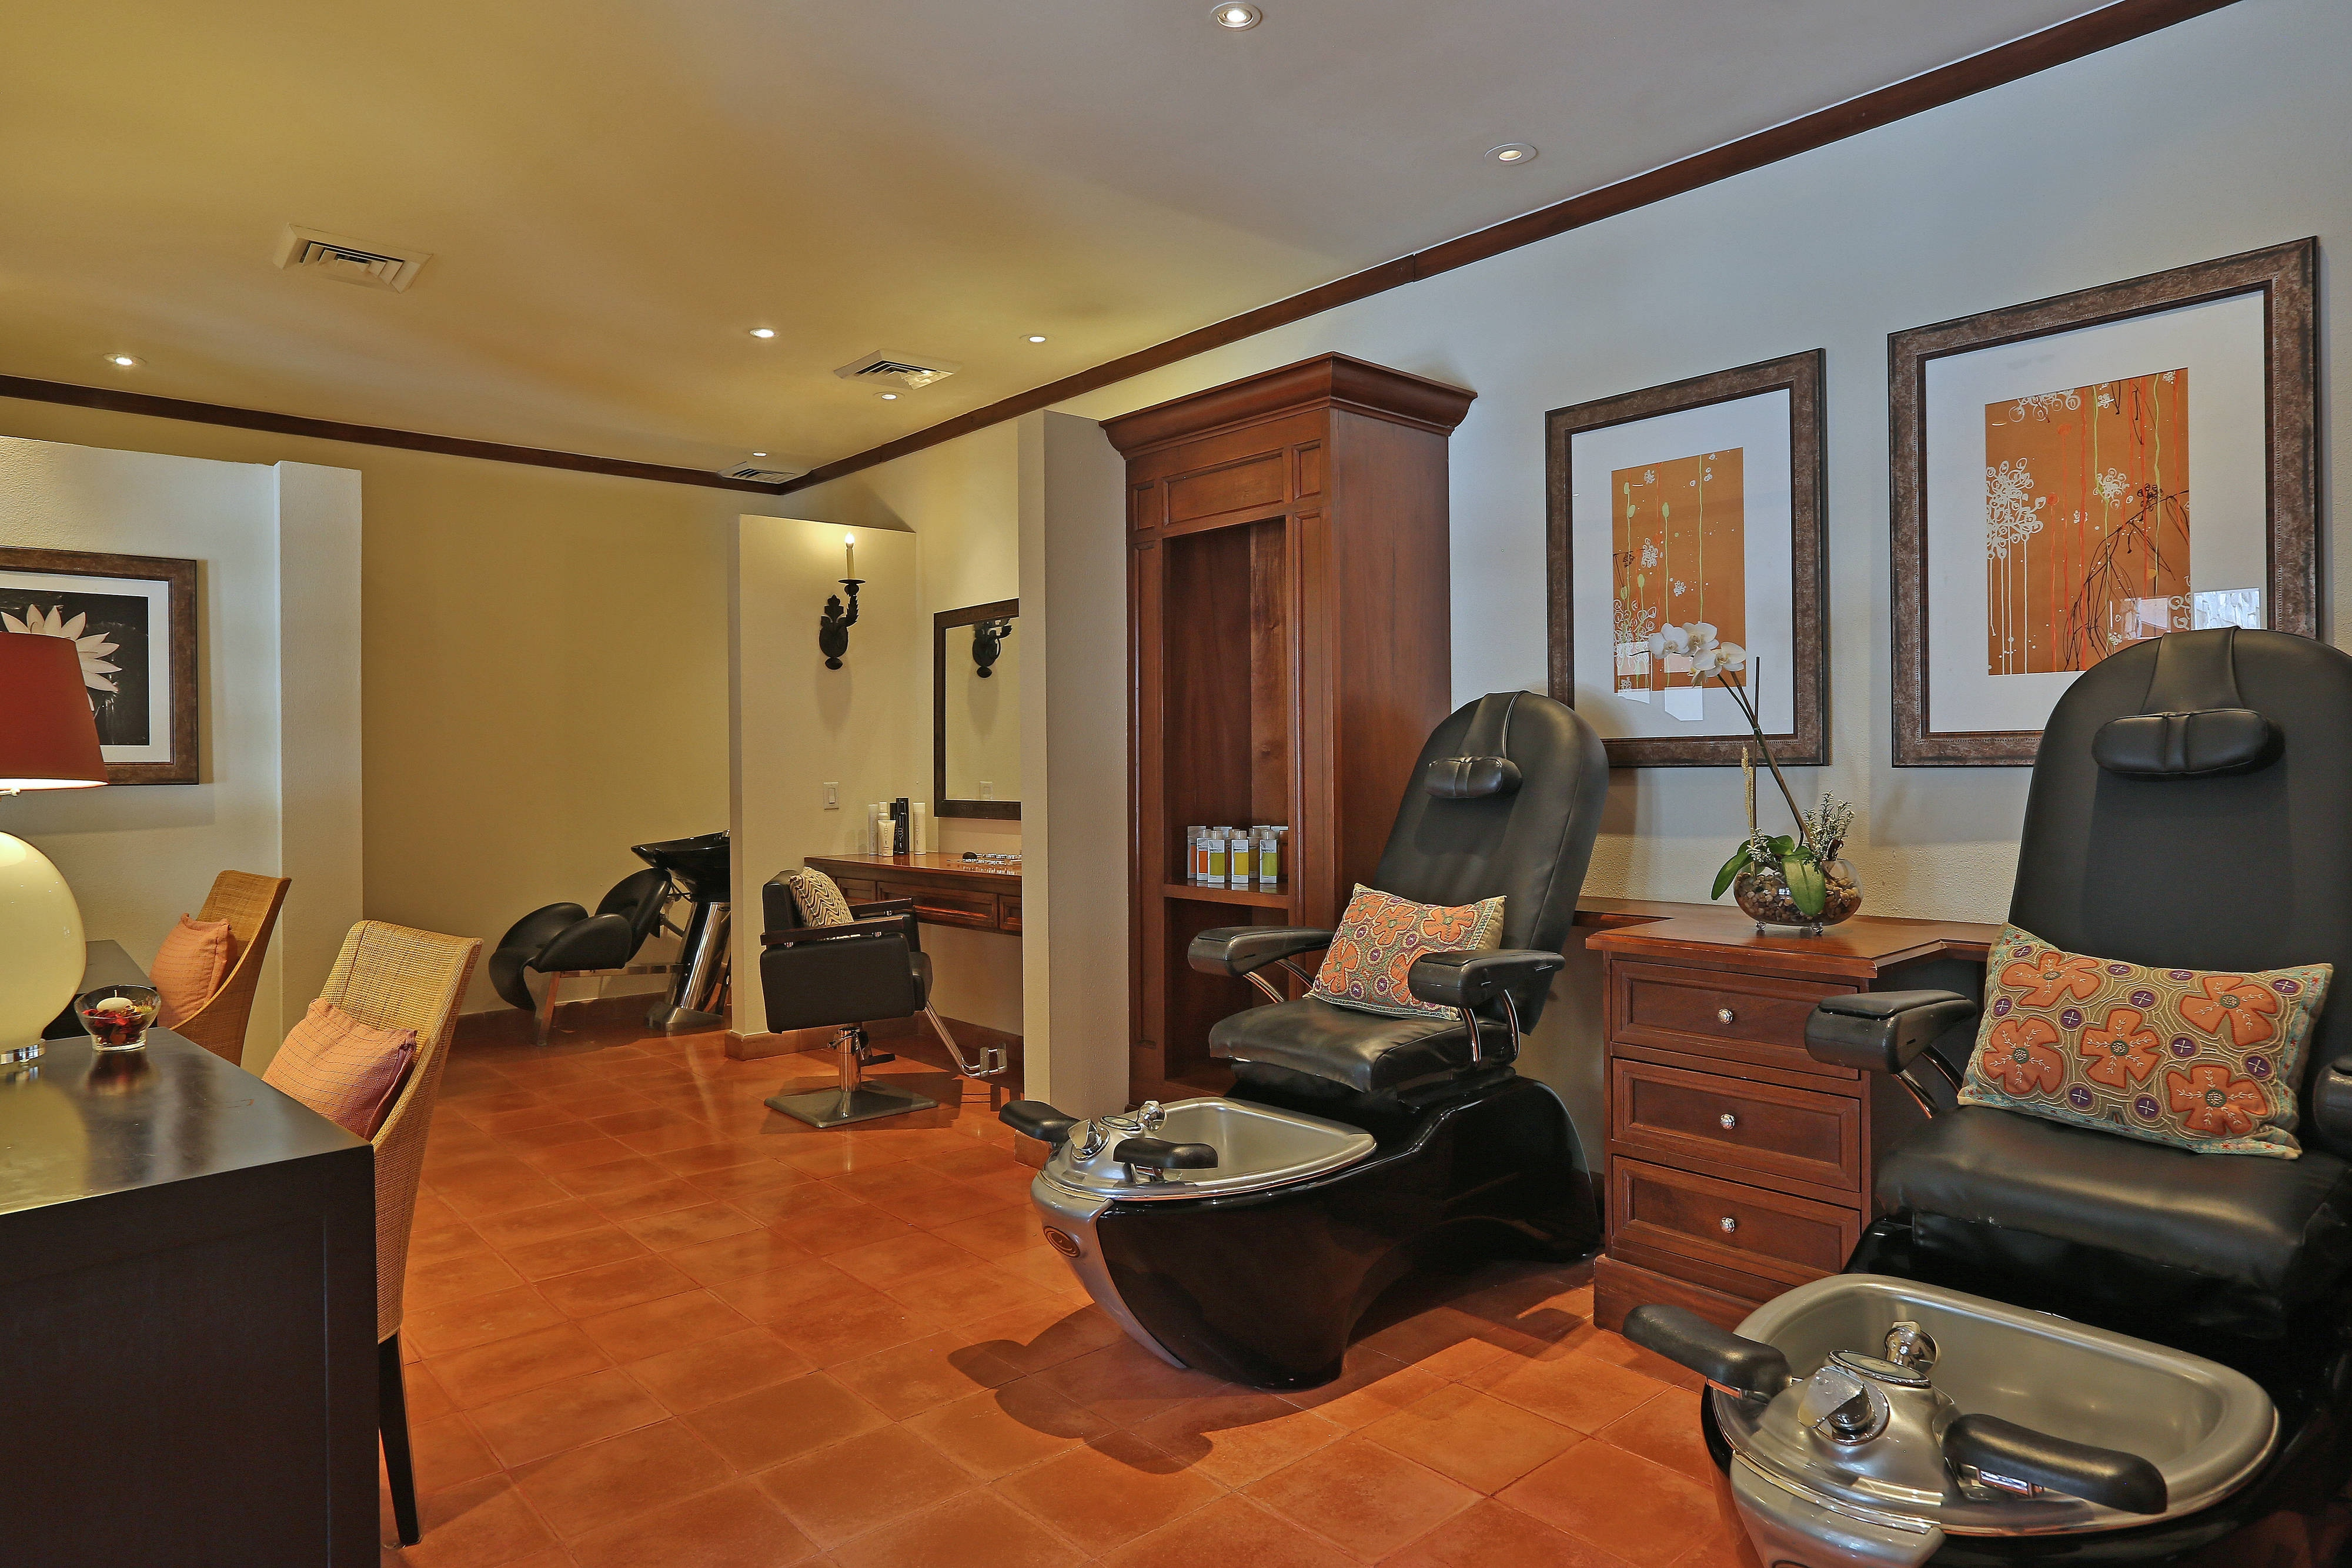 Guanacaste Spa beauty salon